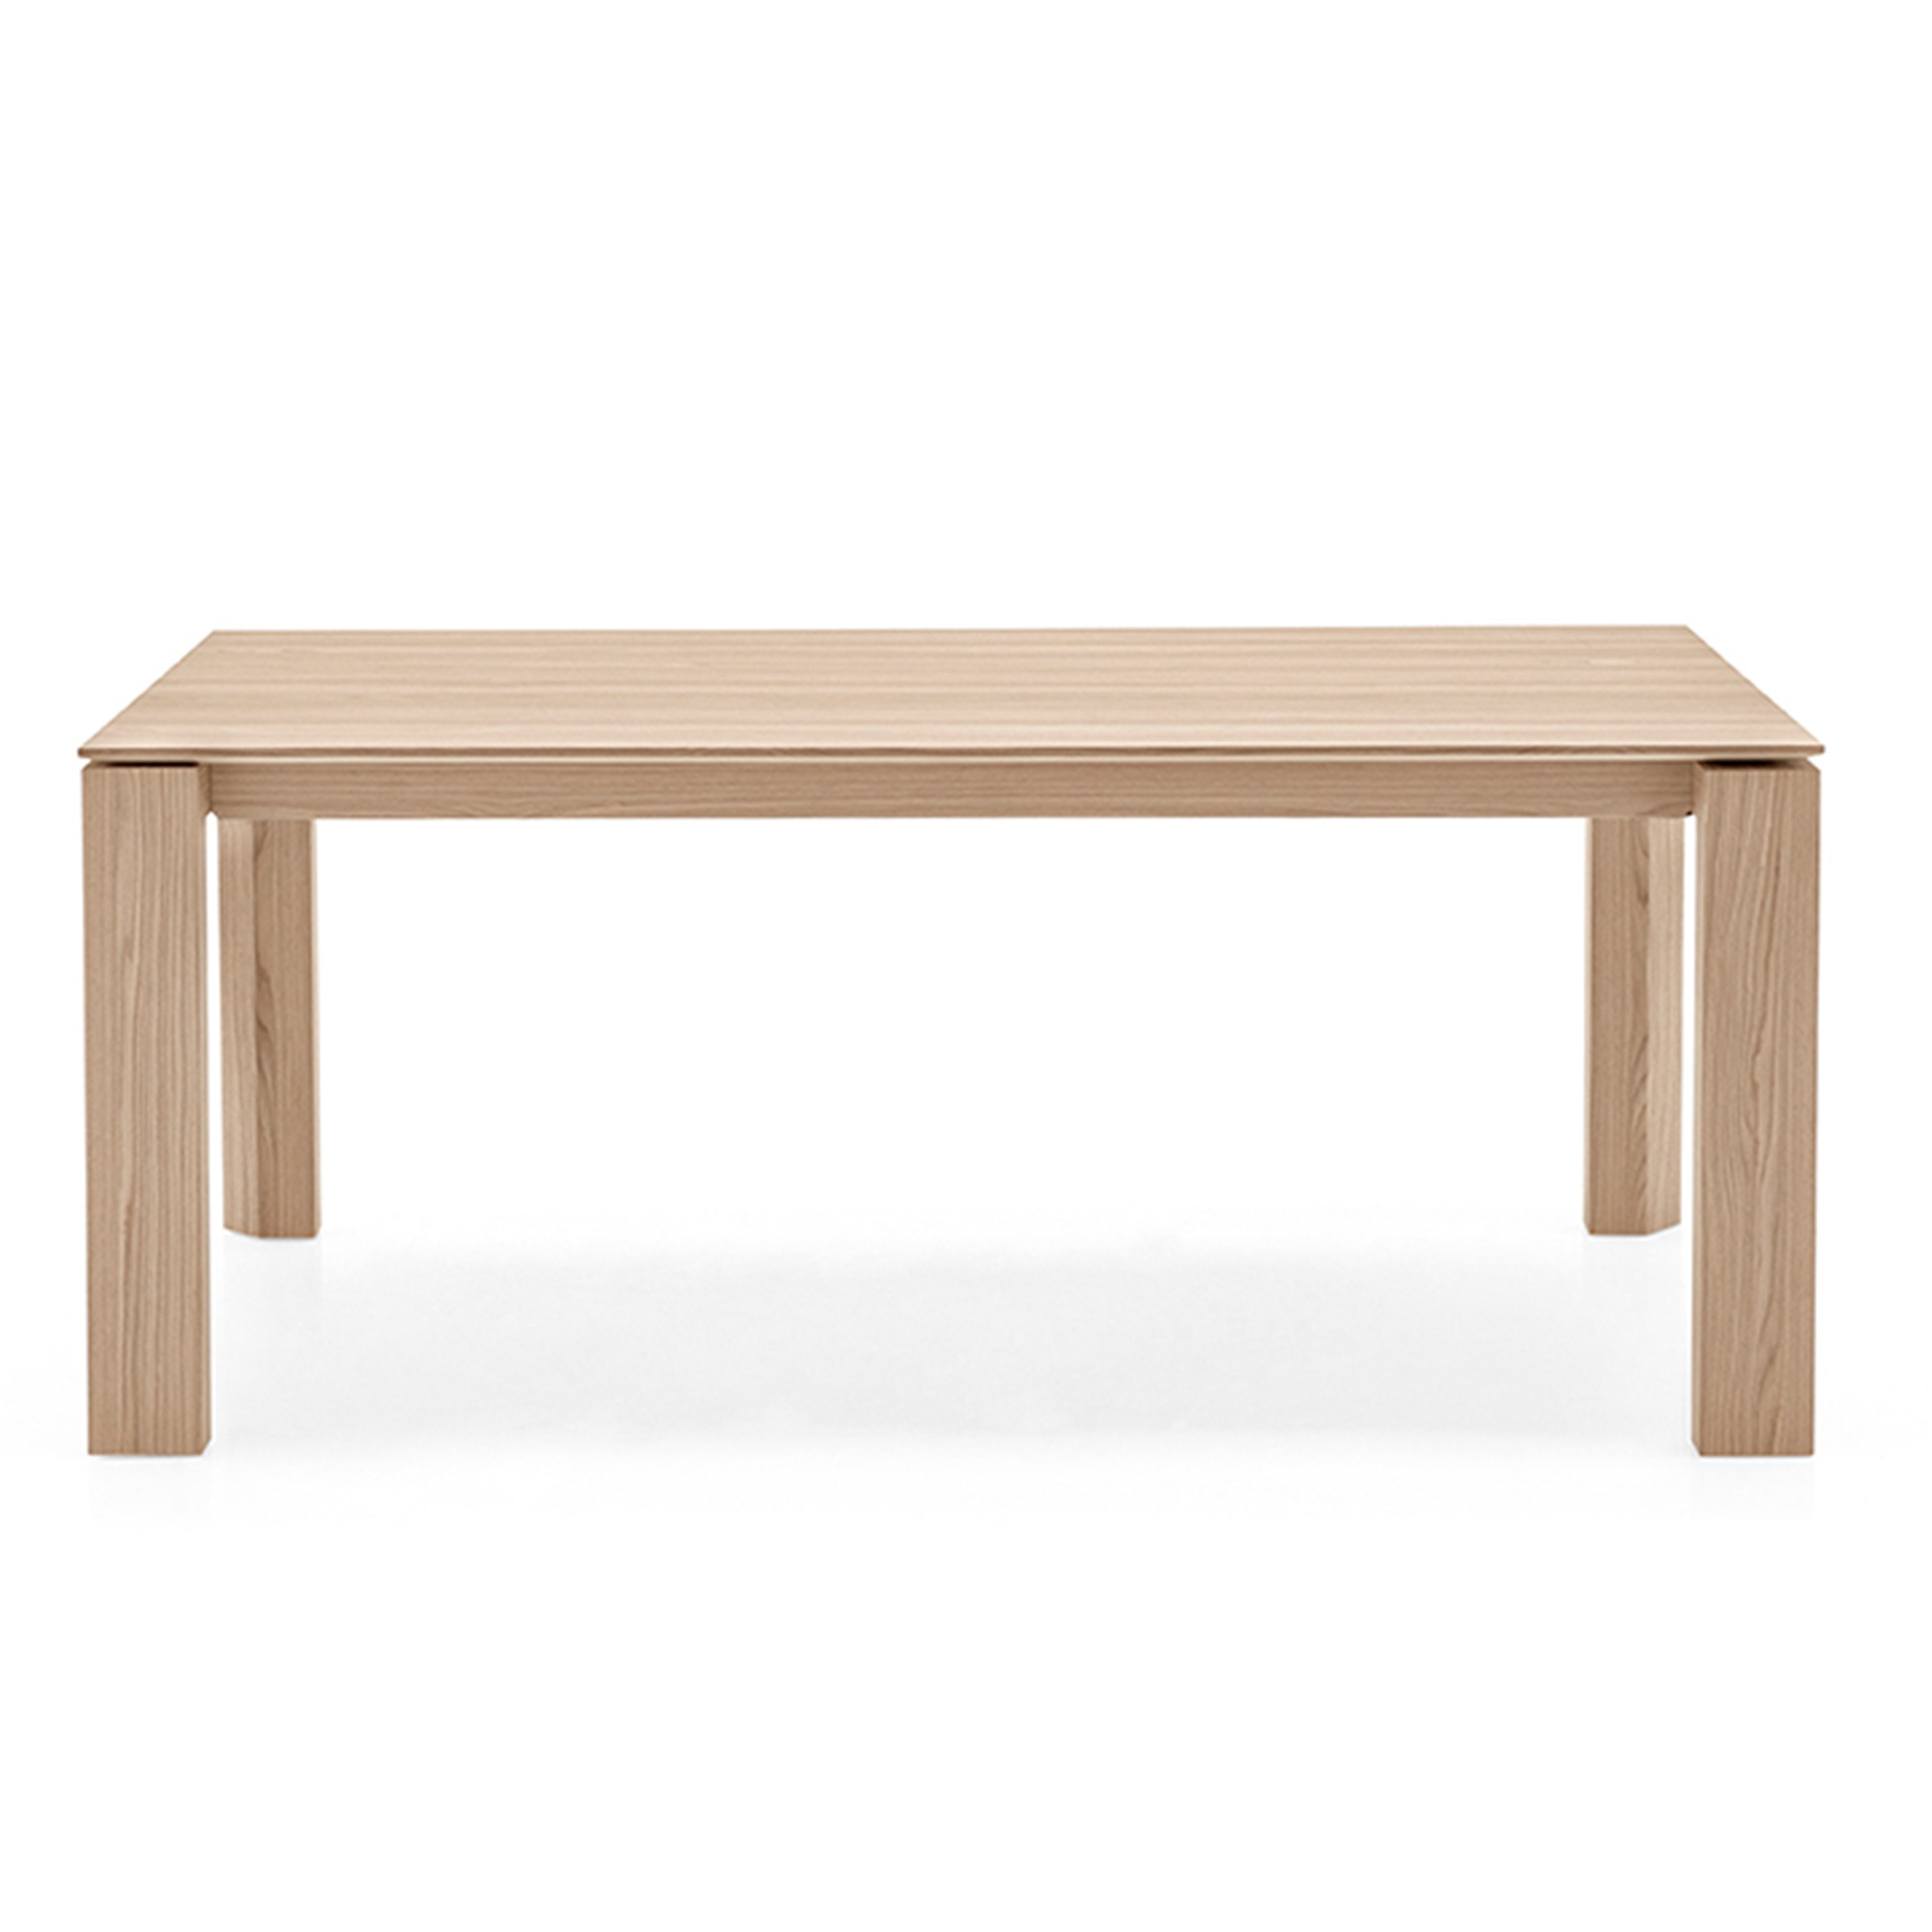 Calligaris omnia dining table calligaris cookes furniture for Table extensible calligaris